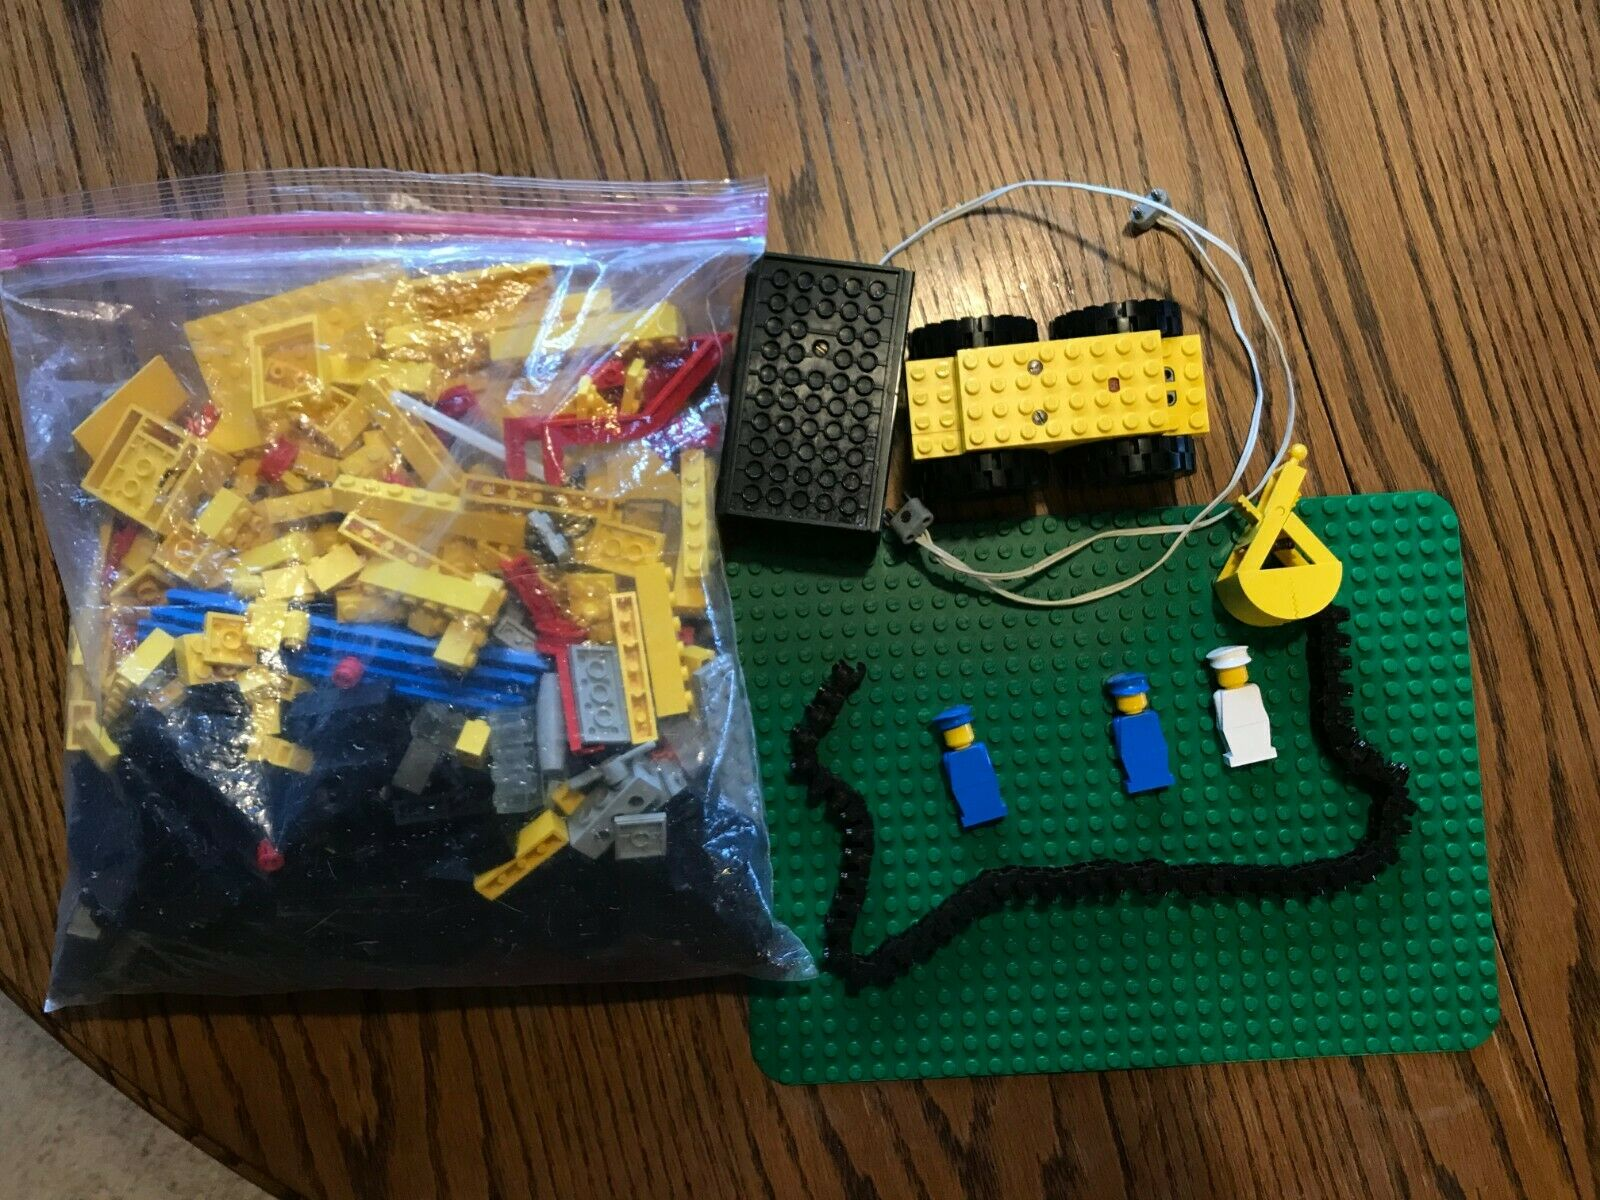 Lego Universal Building Set 404 from 1977 complete with original Legos